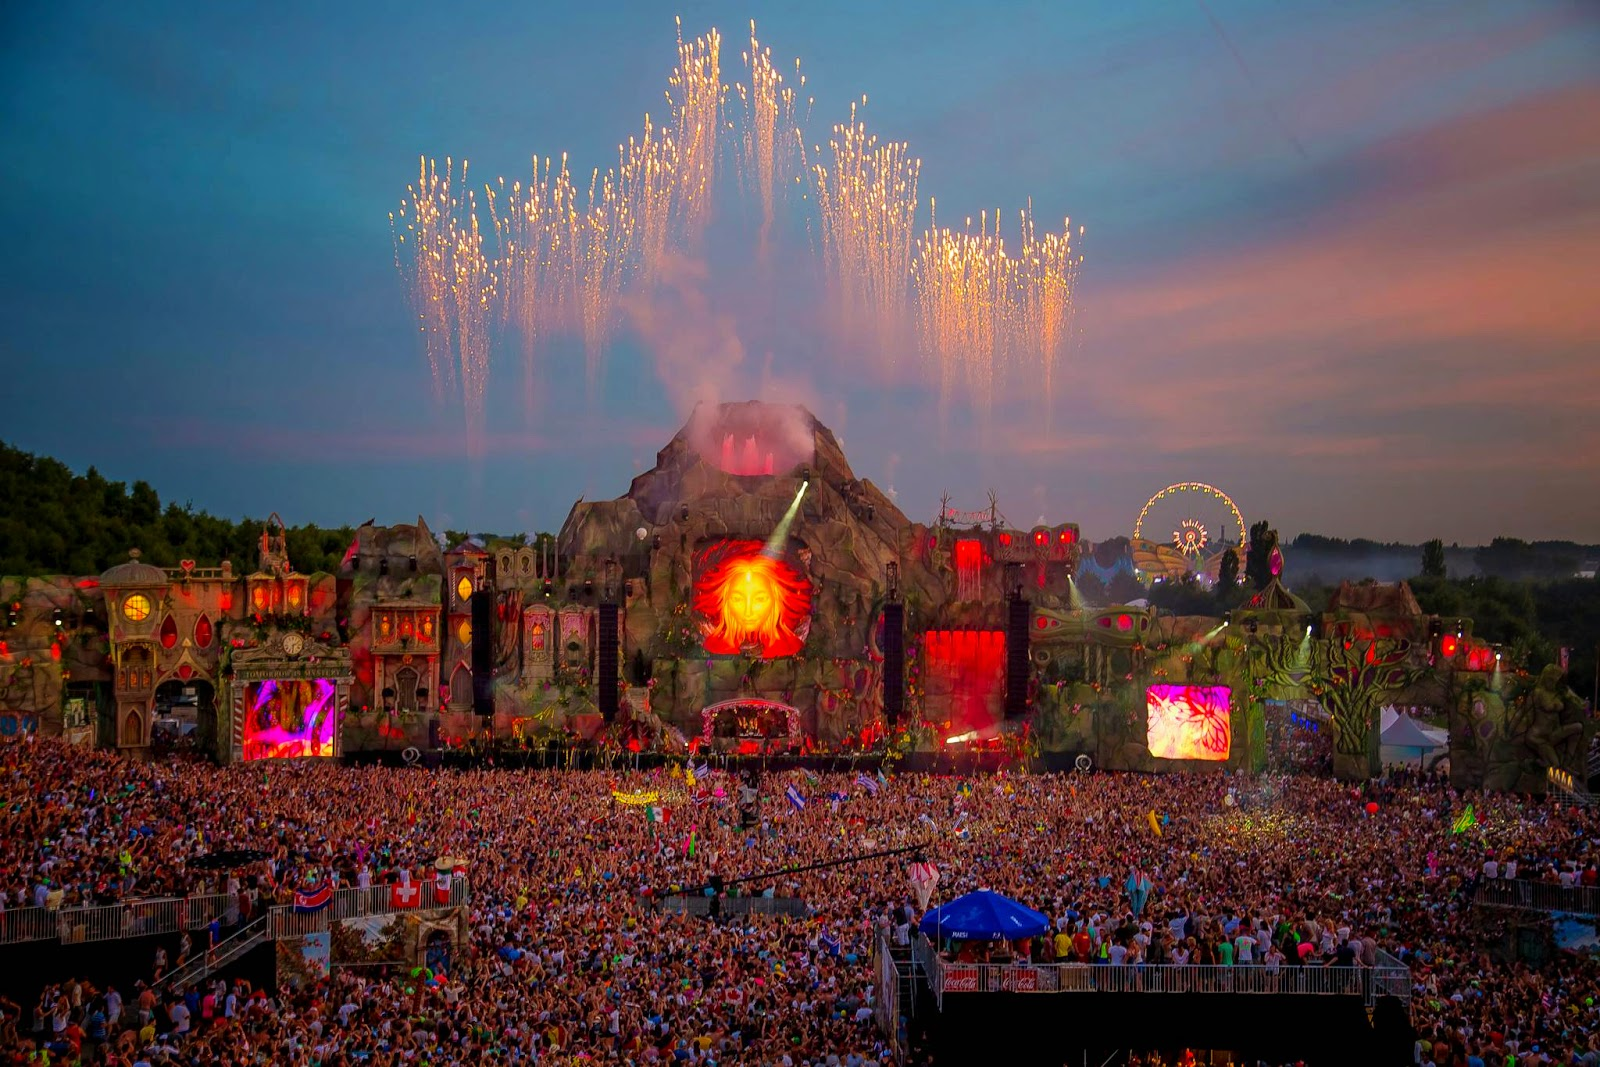 Best EDM, Trance, Bass Drops songs that are famous India and